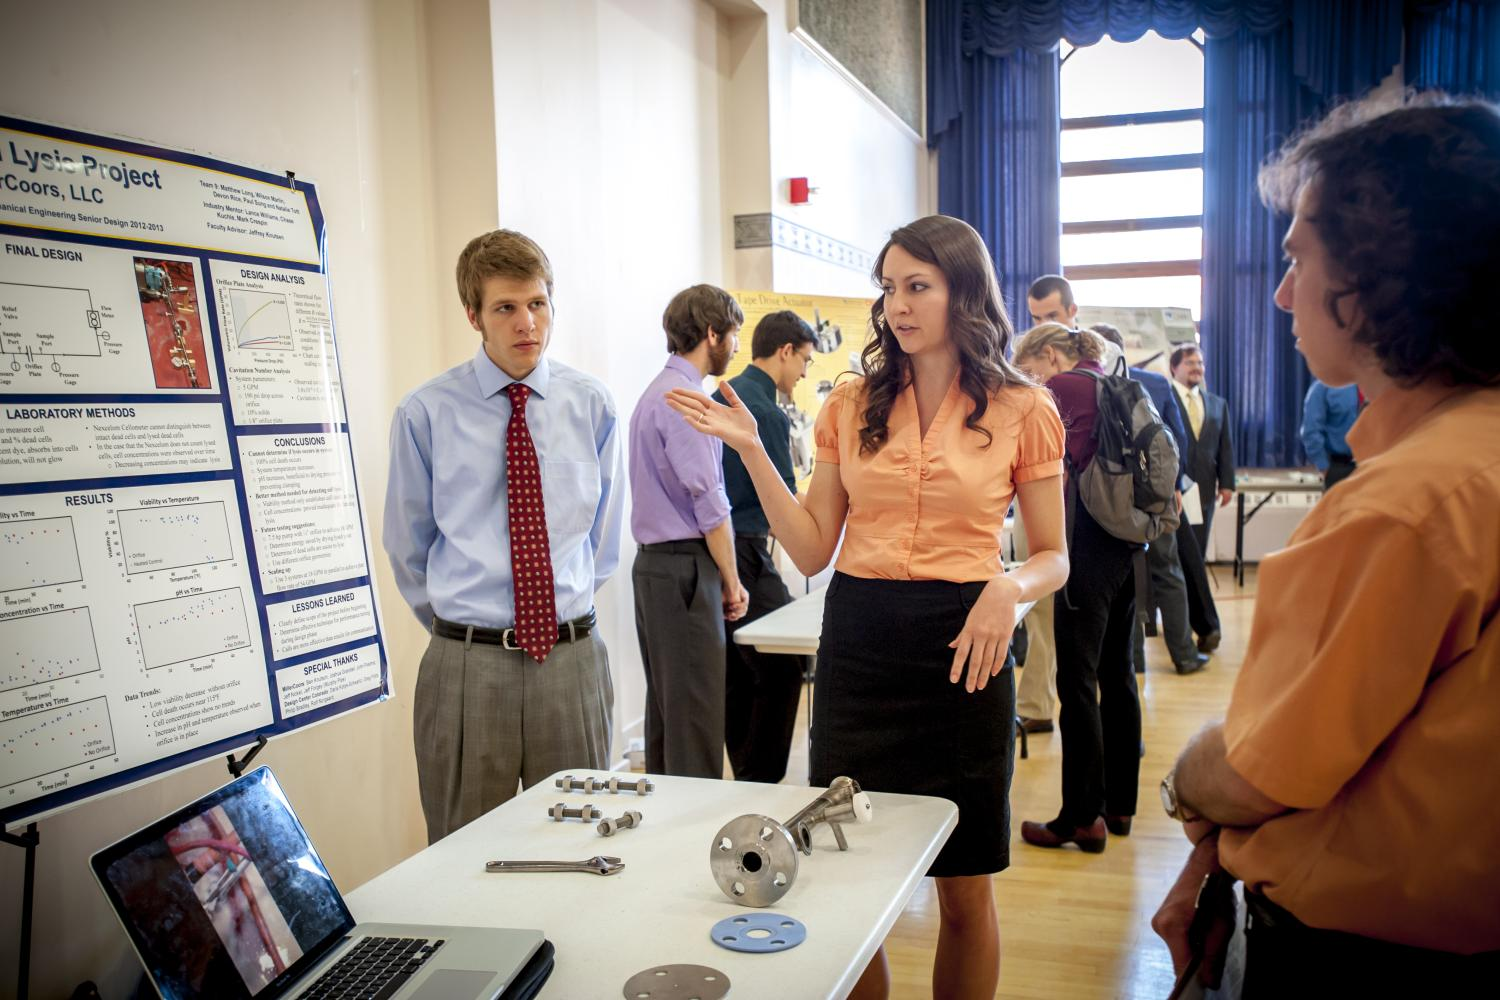 A student explains her project to a guest at the mechanical engineering expo.